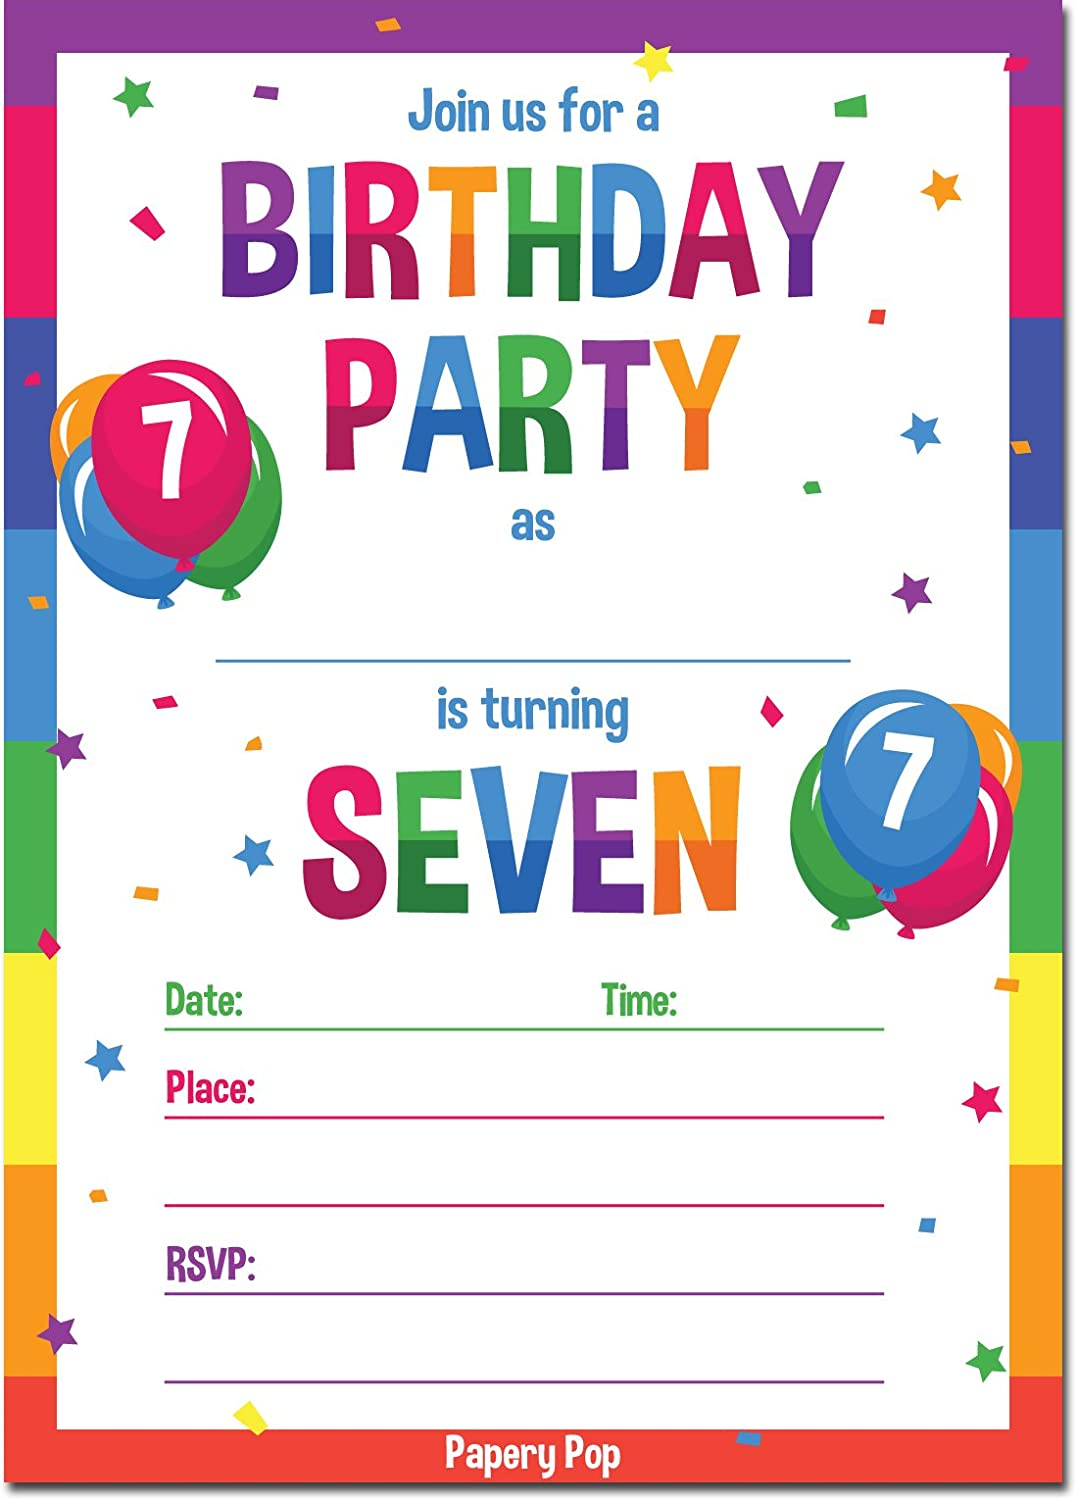 Papery Pop 5th Birthday Party Invitations with Envelopes (5 Count) - 5  Year Old Kids Birthday Invitations for Boys or Girls - Rainbow